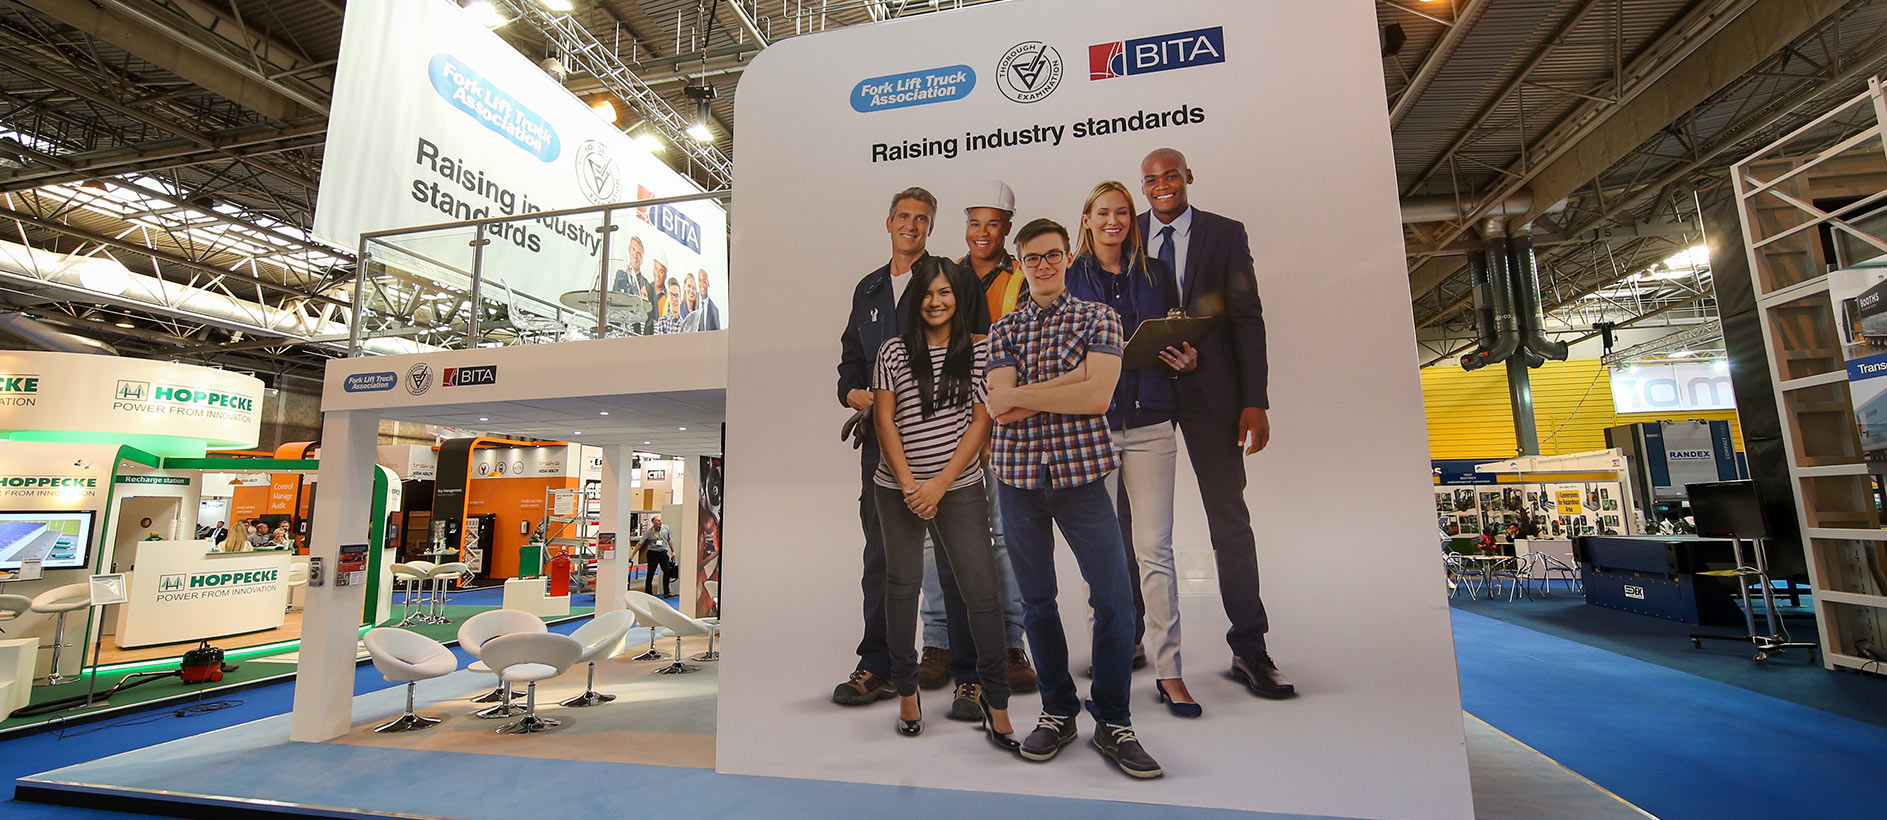 Large exhibition graphics at IMHX